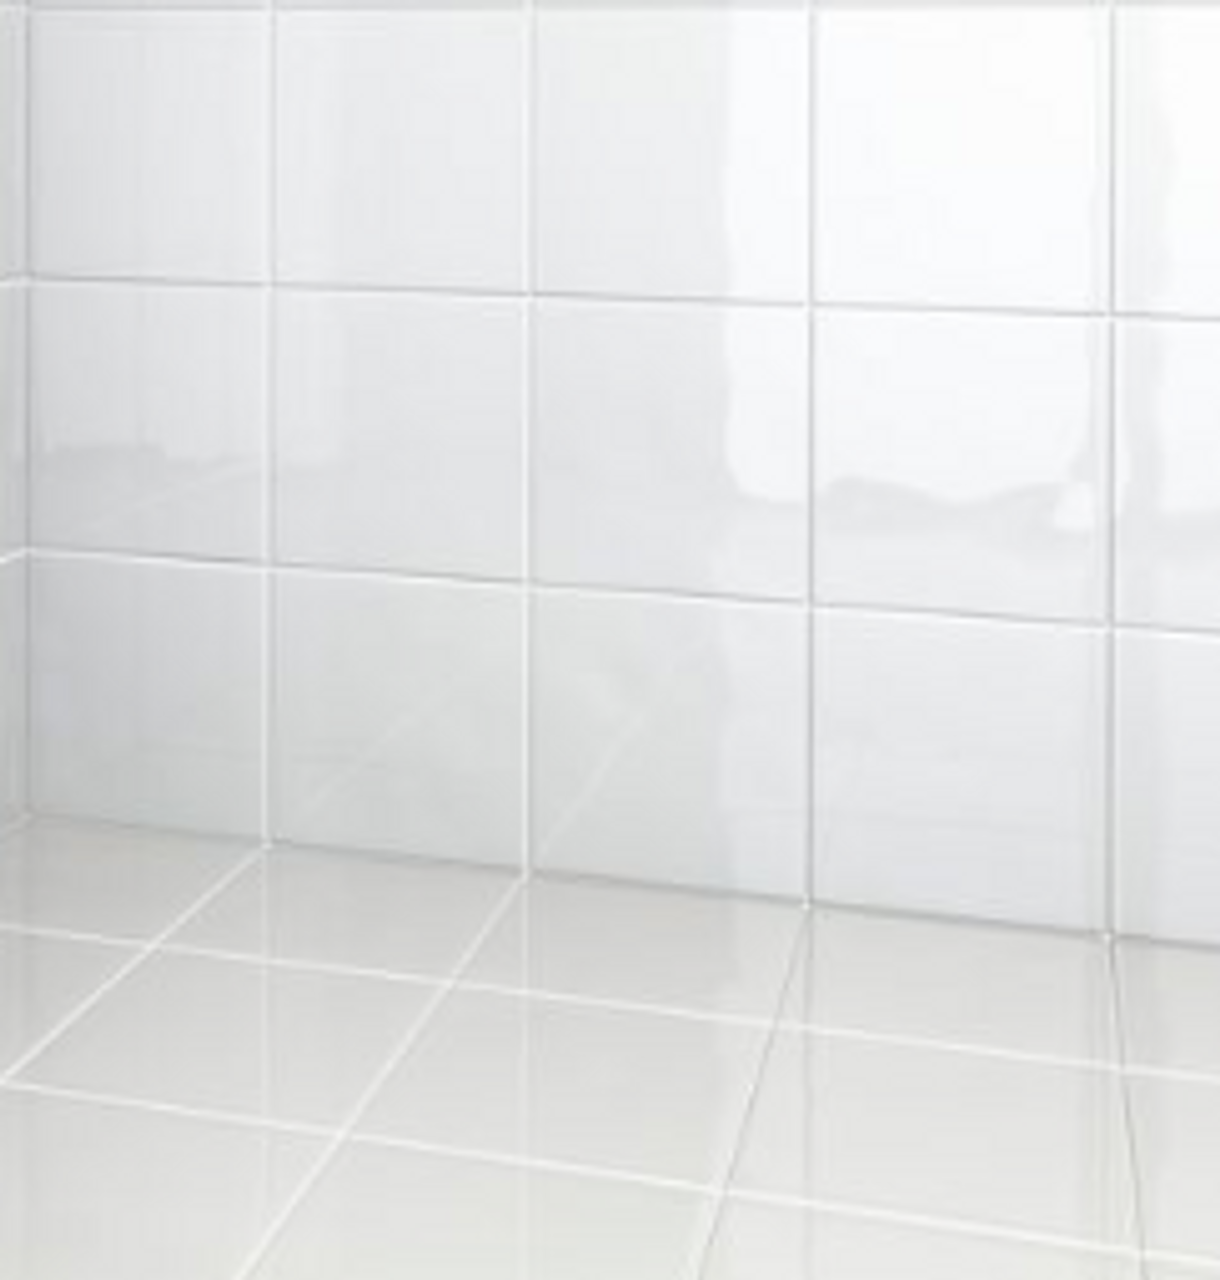 Tile Board (Grout/No Grout)